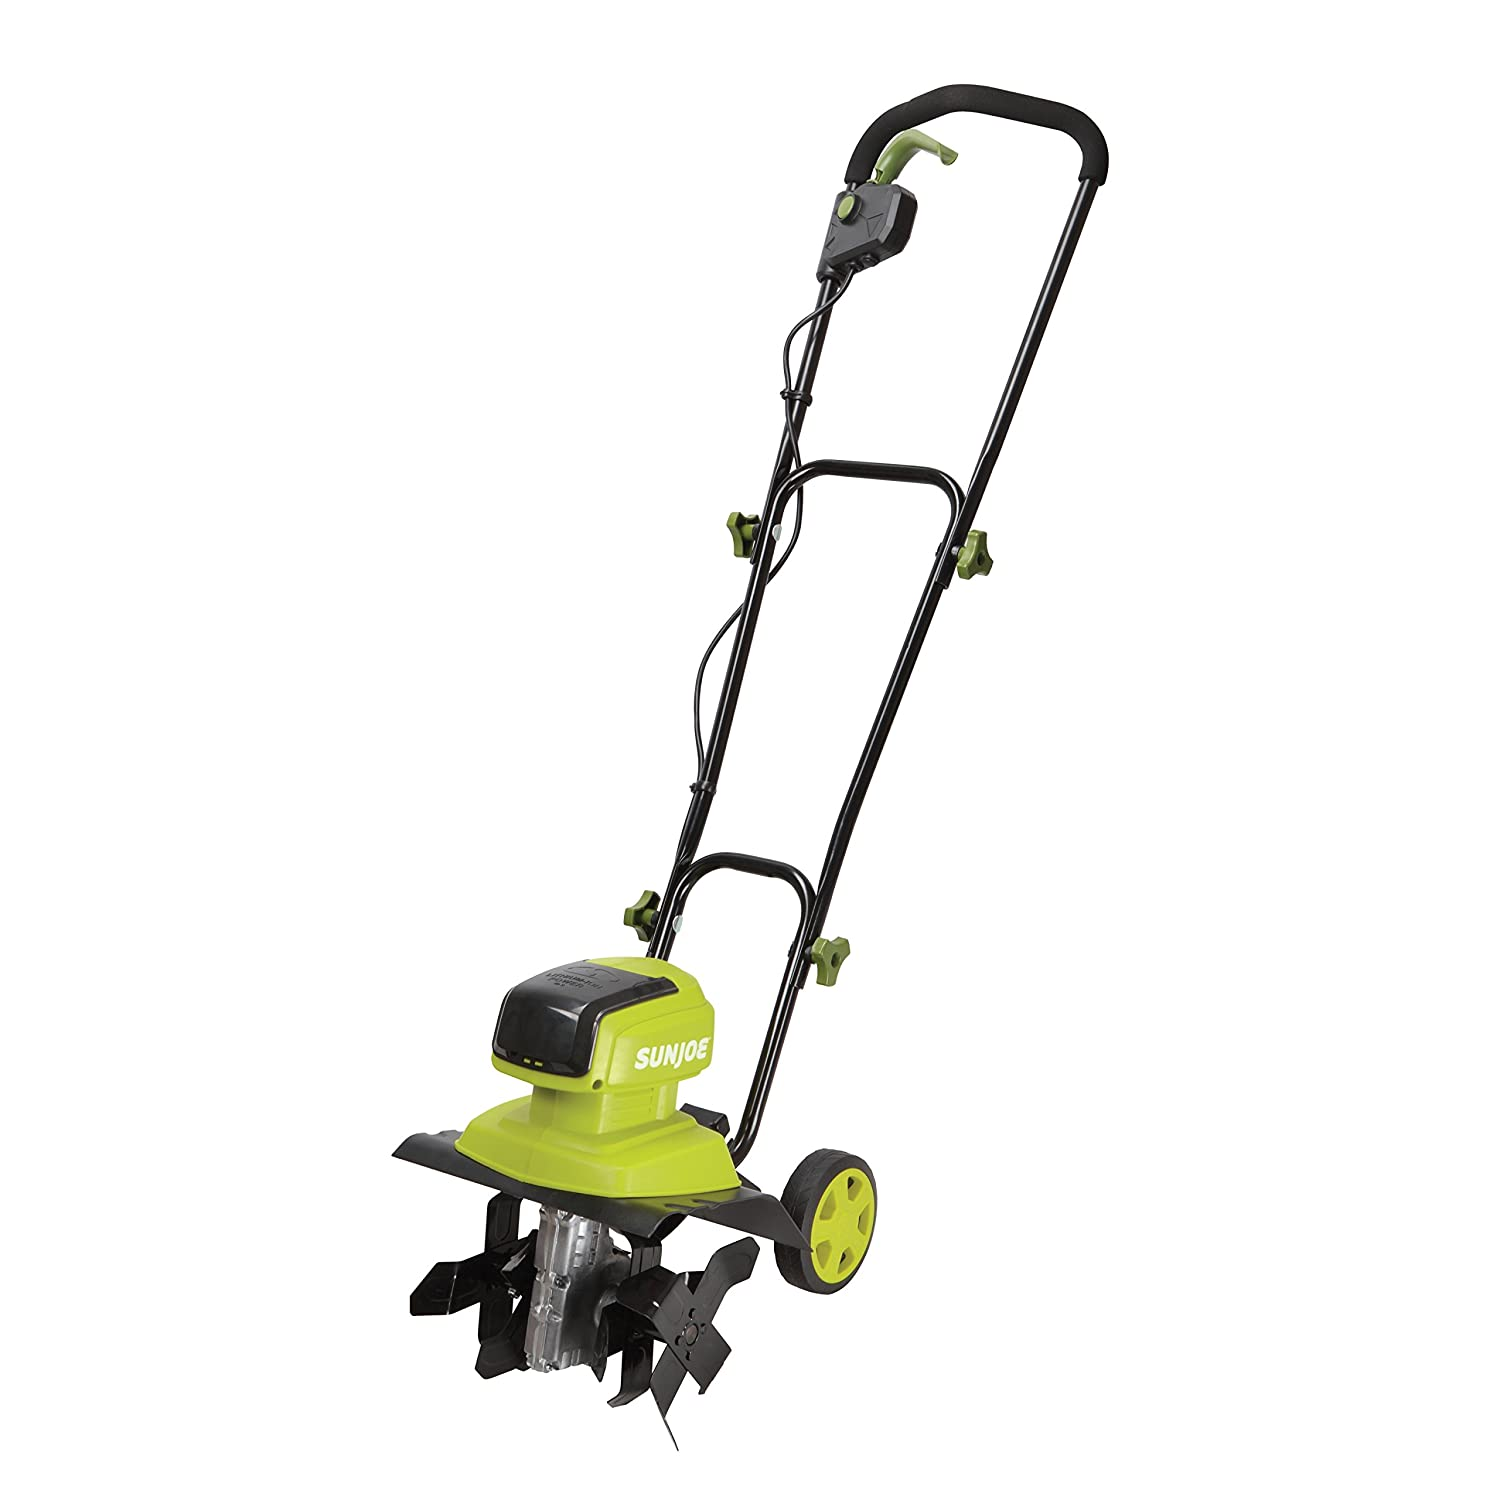 "Sun Joe iON12TL 40V 4 Amp Brushless Motor 12"" Front Tine Cordless Tiller + Cultivator with Wheels"